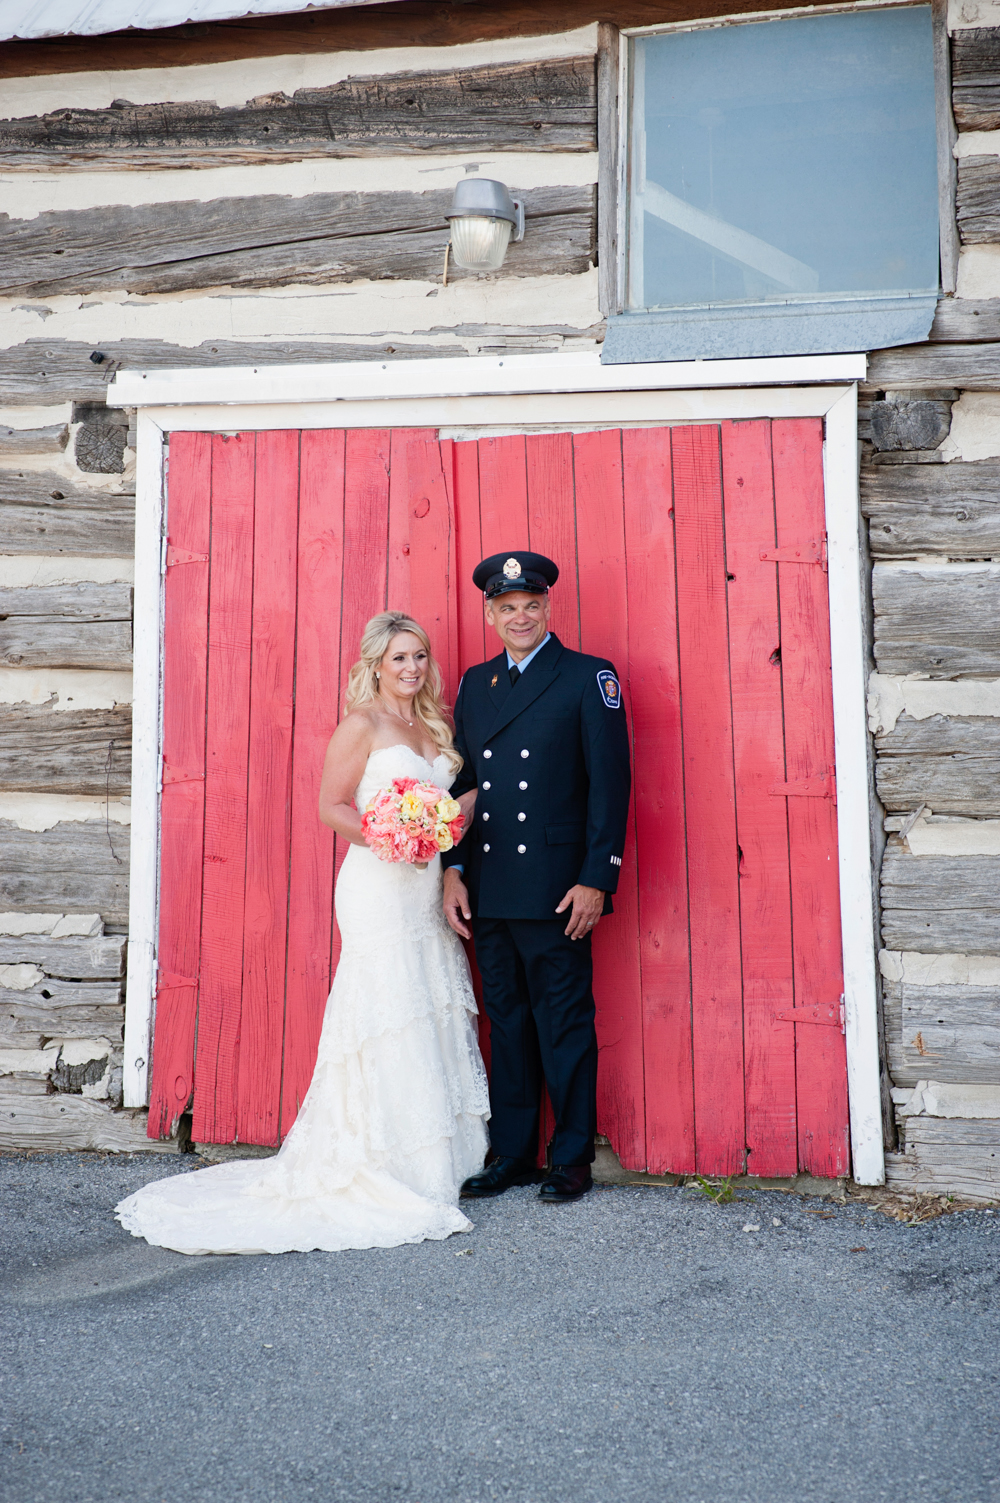 black-lamb-photography-ottawa-wedding-photographer-fire-fighter-themed-wedding-shoot-17